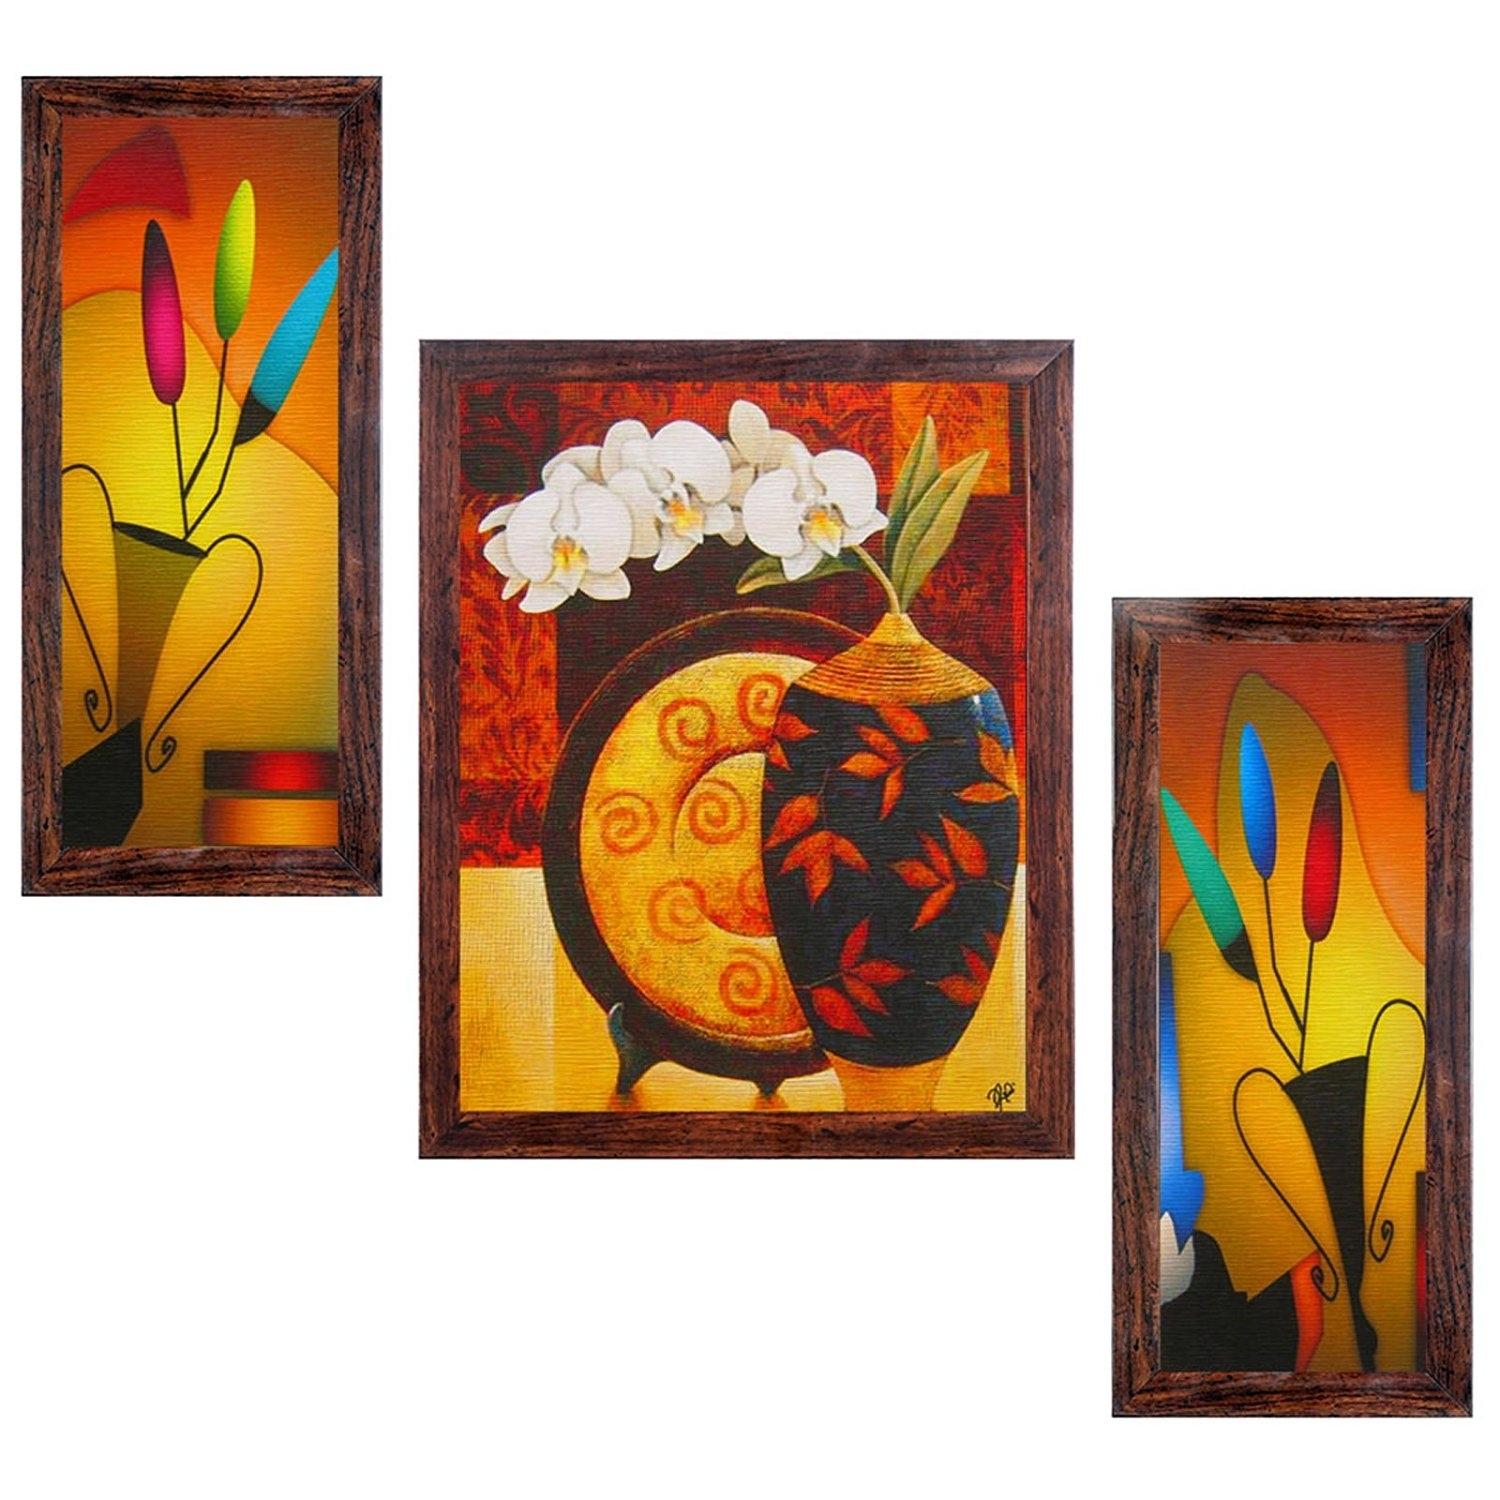 Bxp Stunning Wall Art Paintings – Wall Decoration Ideas Intended For Most Up To Date Wall Art Paintings (View 20 of 20)